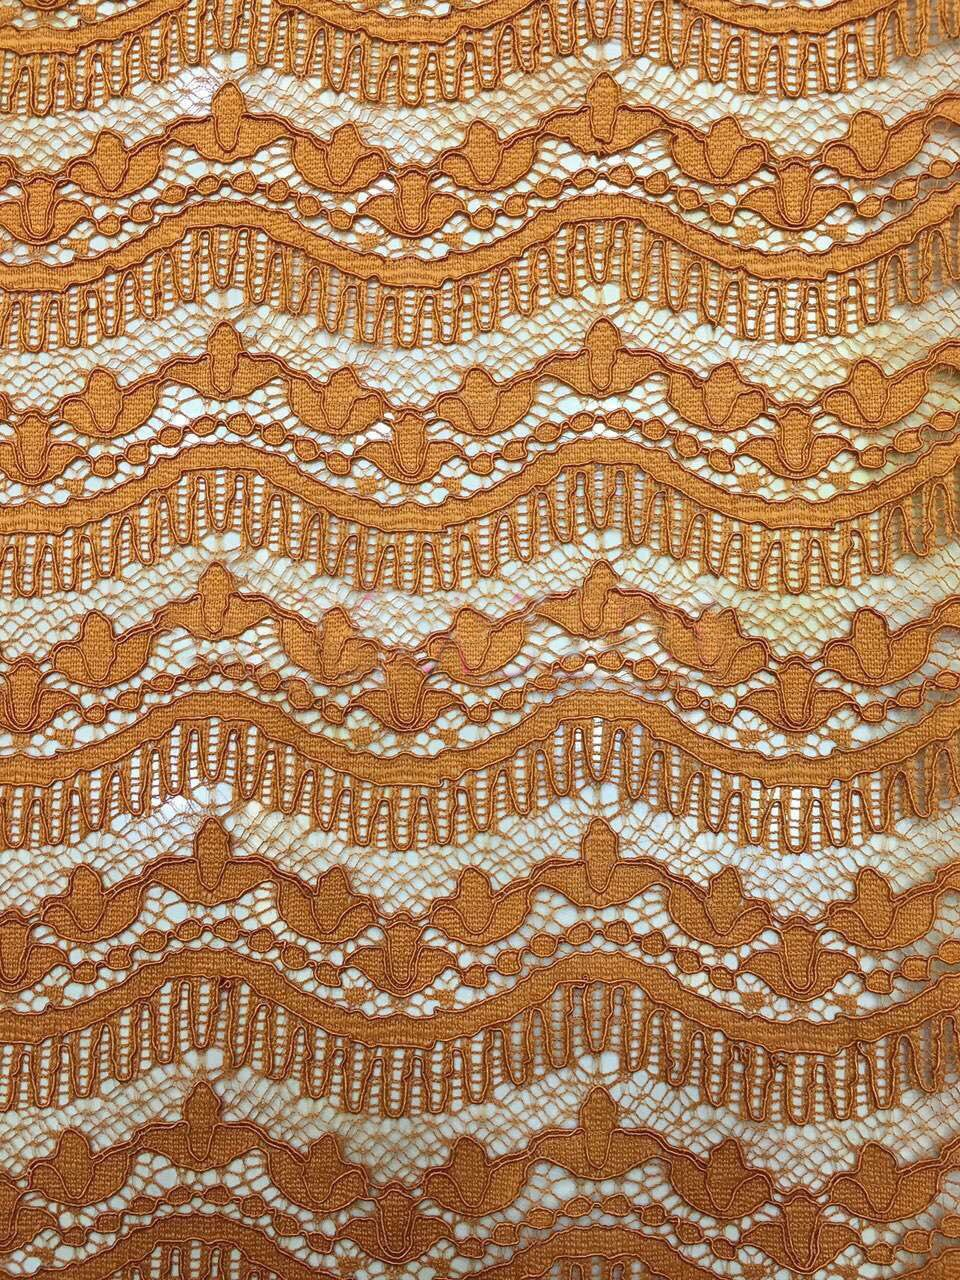 Cotton Crochet Lace Fabric Cord Fabrics Embroidered Lace